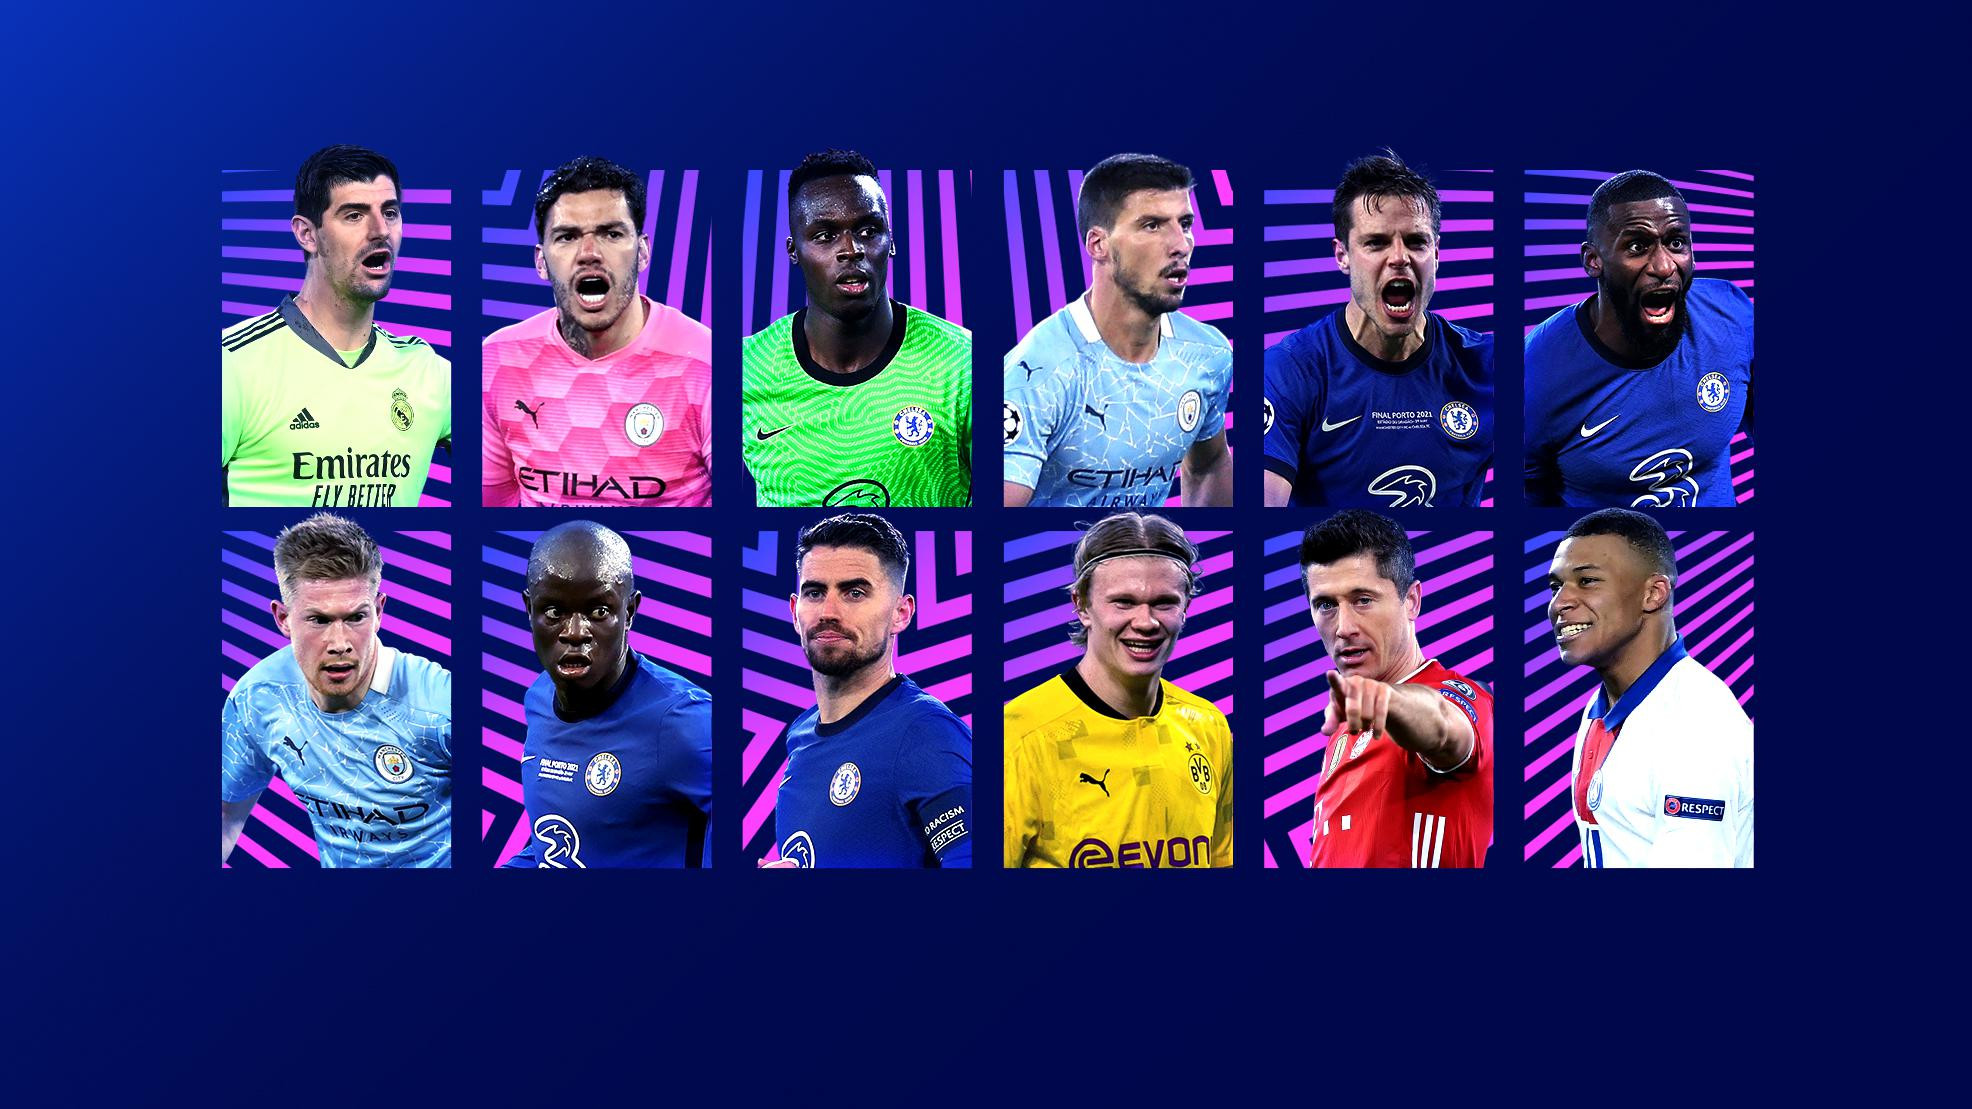 Chelsea bags five nominations for Champions League Player of the Year, with N